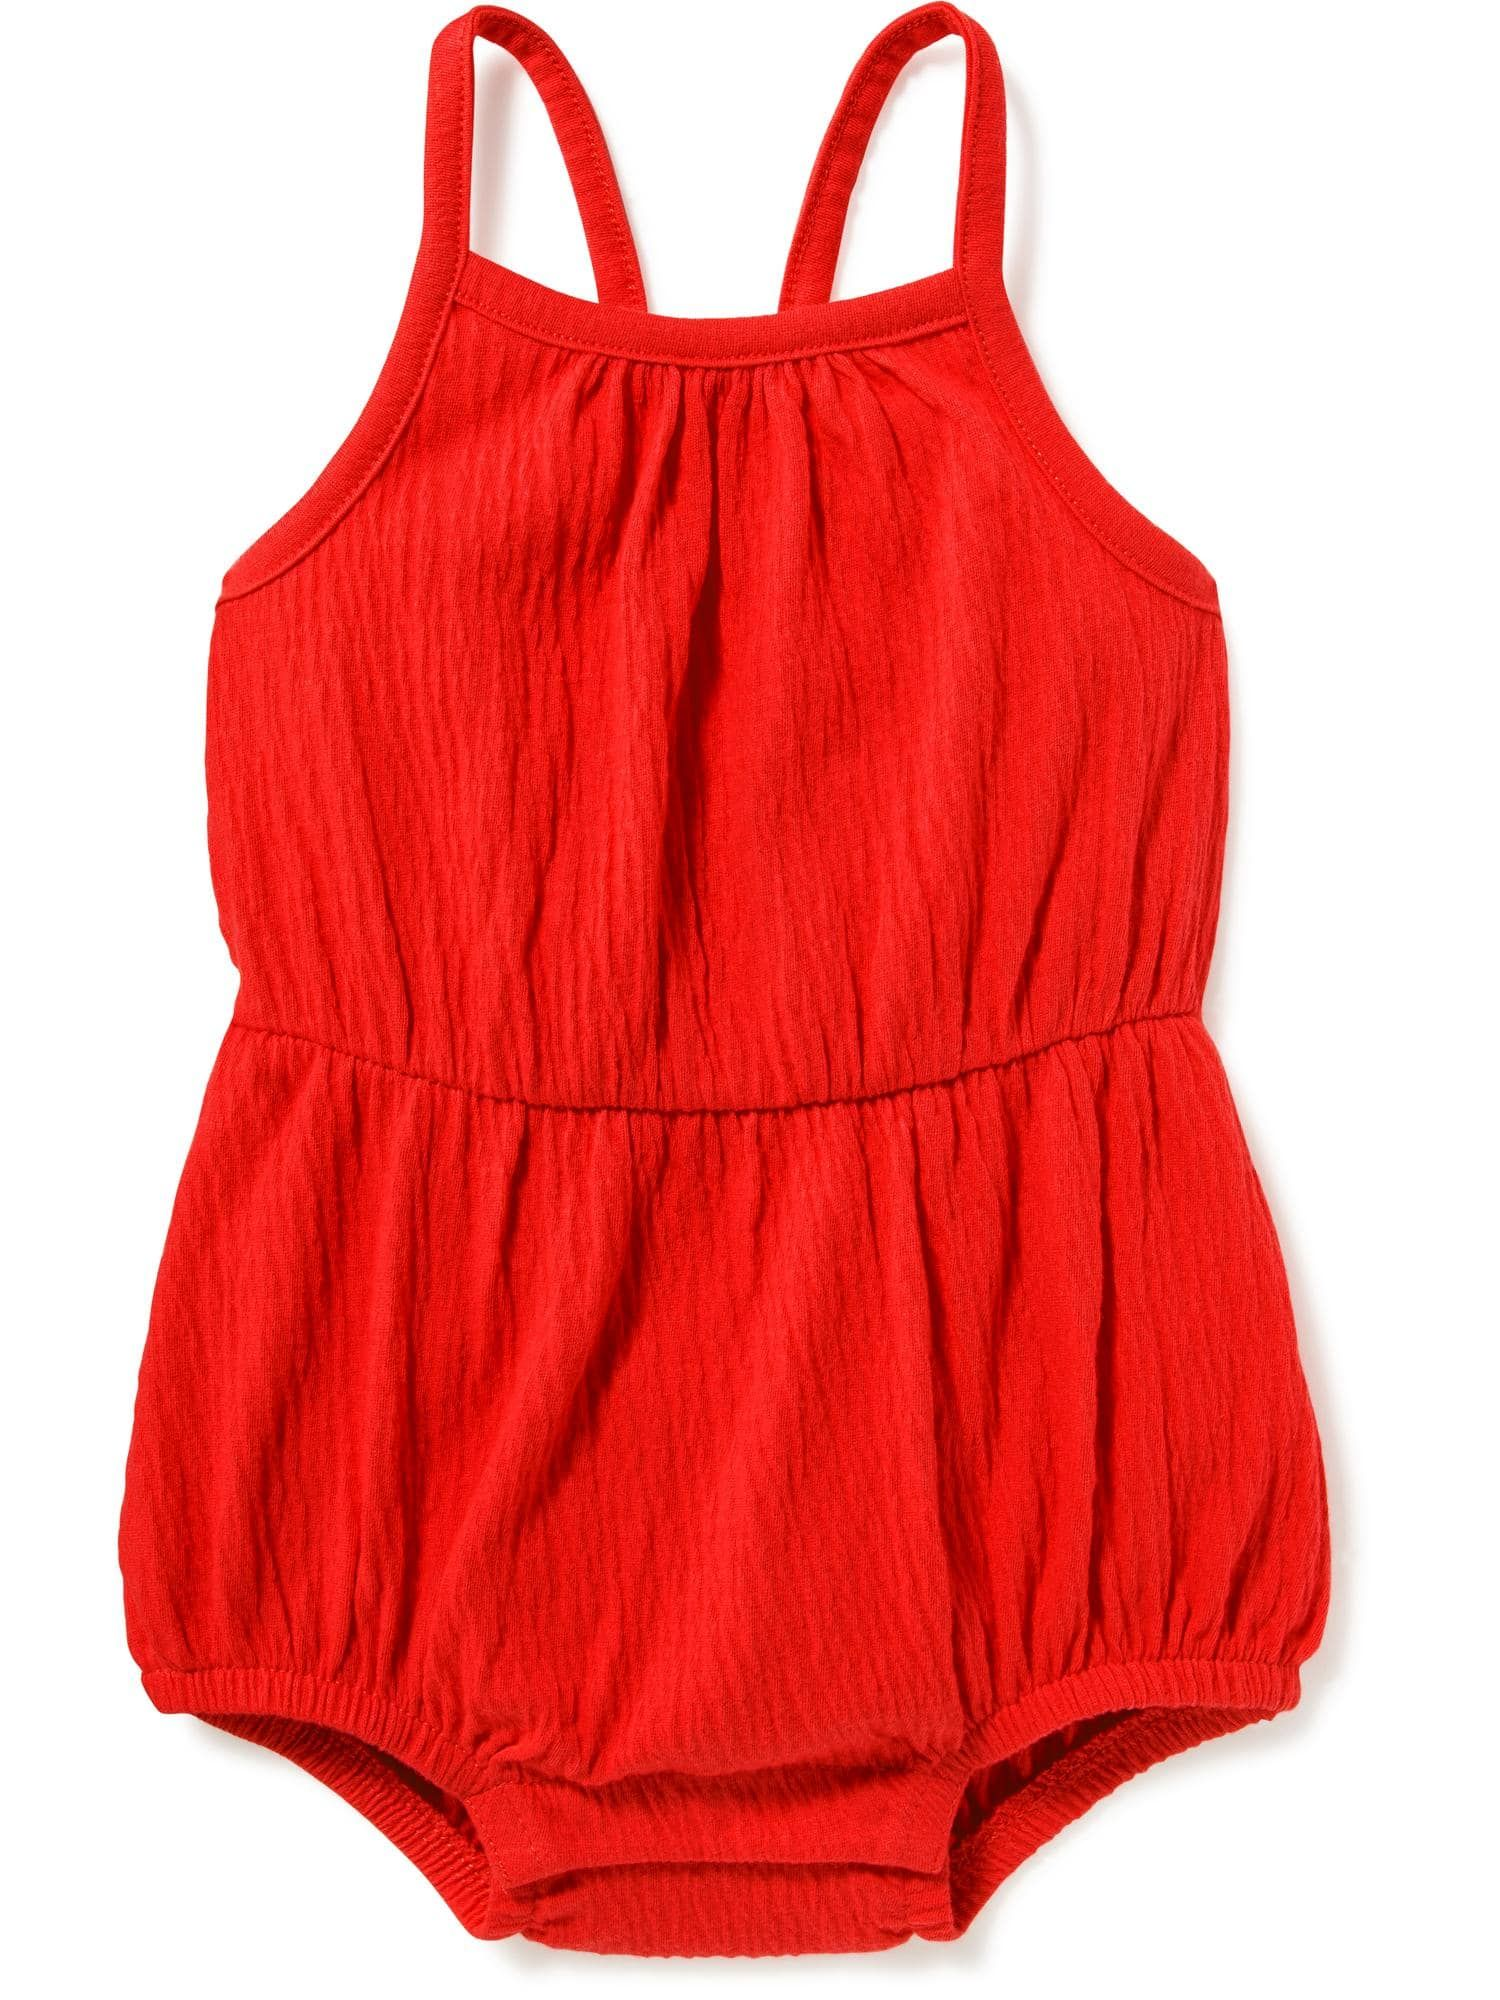 Jersey Bow Back Bubble Romper for Baby Old Navy